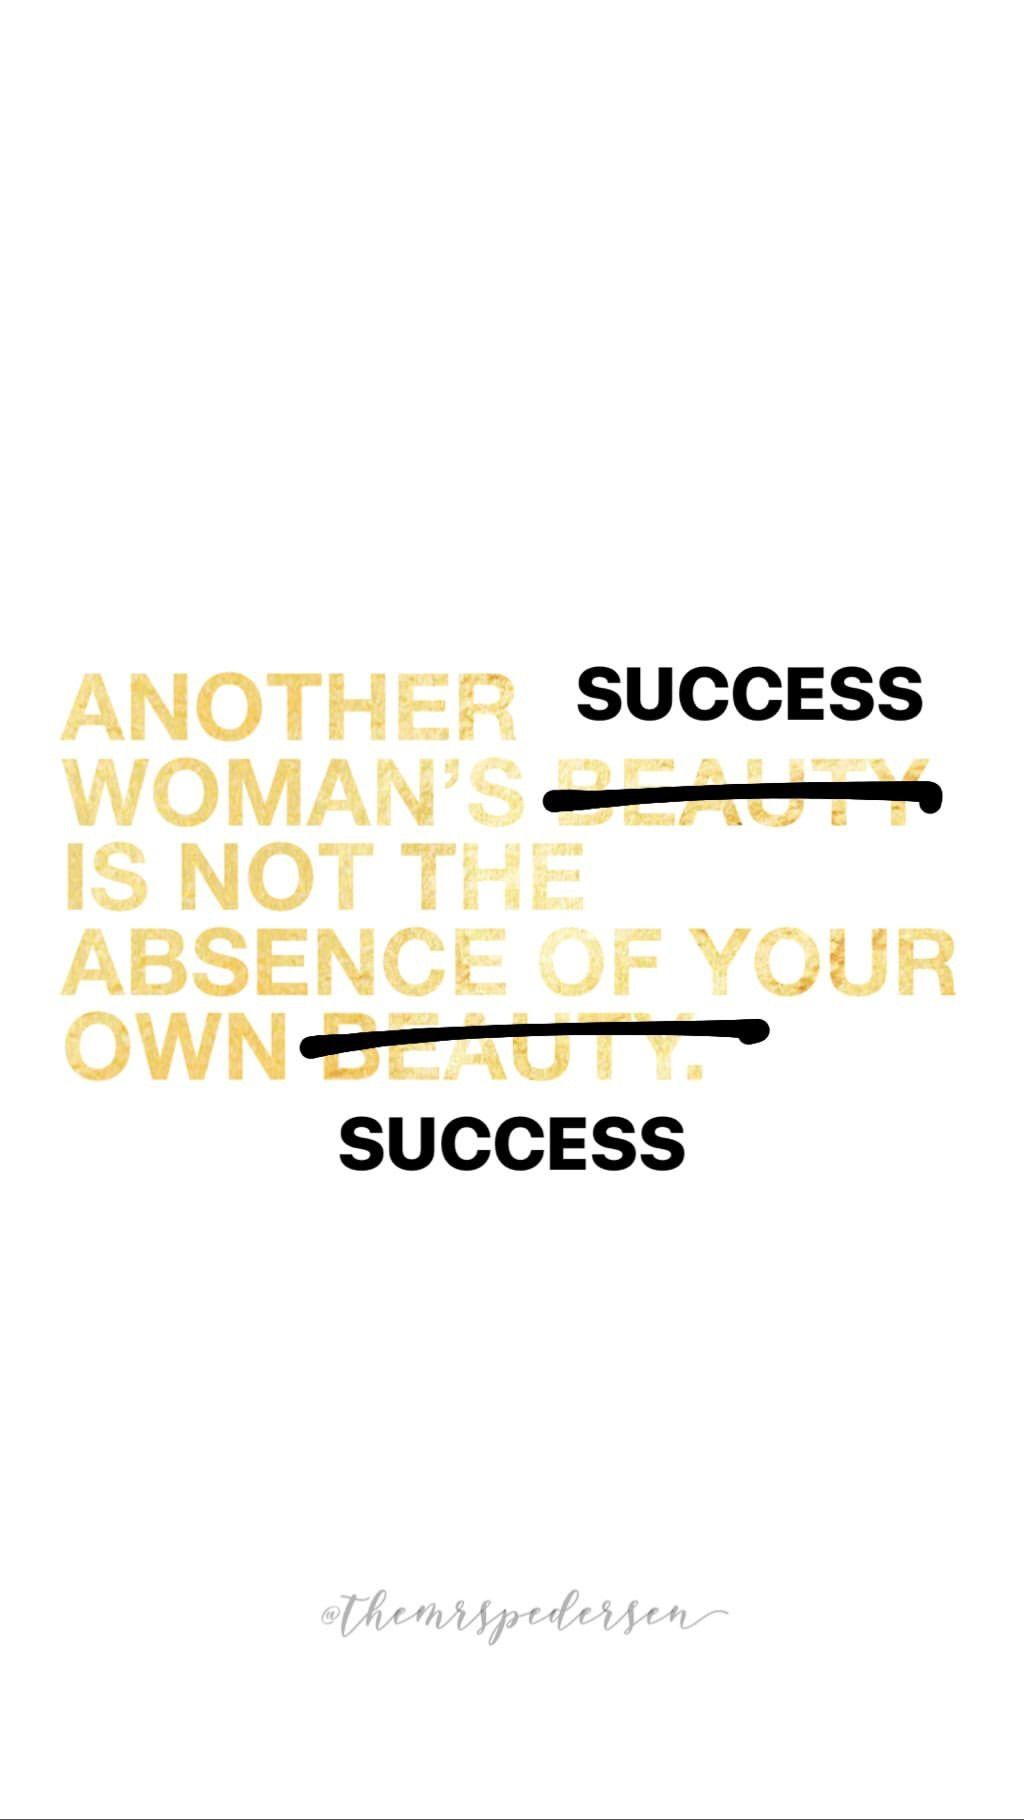 ANOTHER WOMAN S SUCCESS IS NOT THE ABSENCE OF YOUR OWN